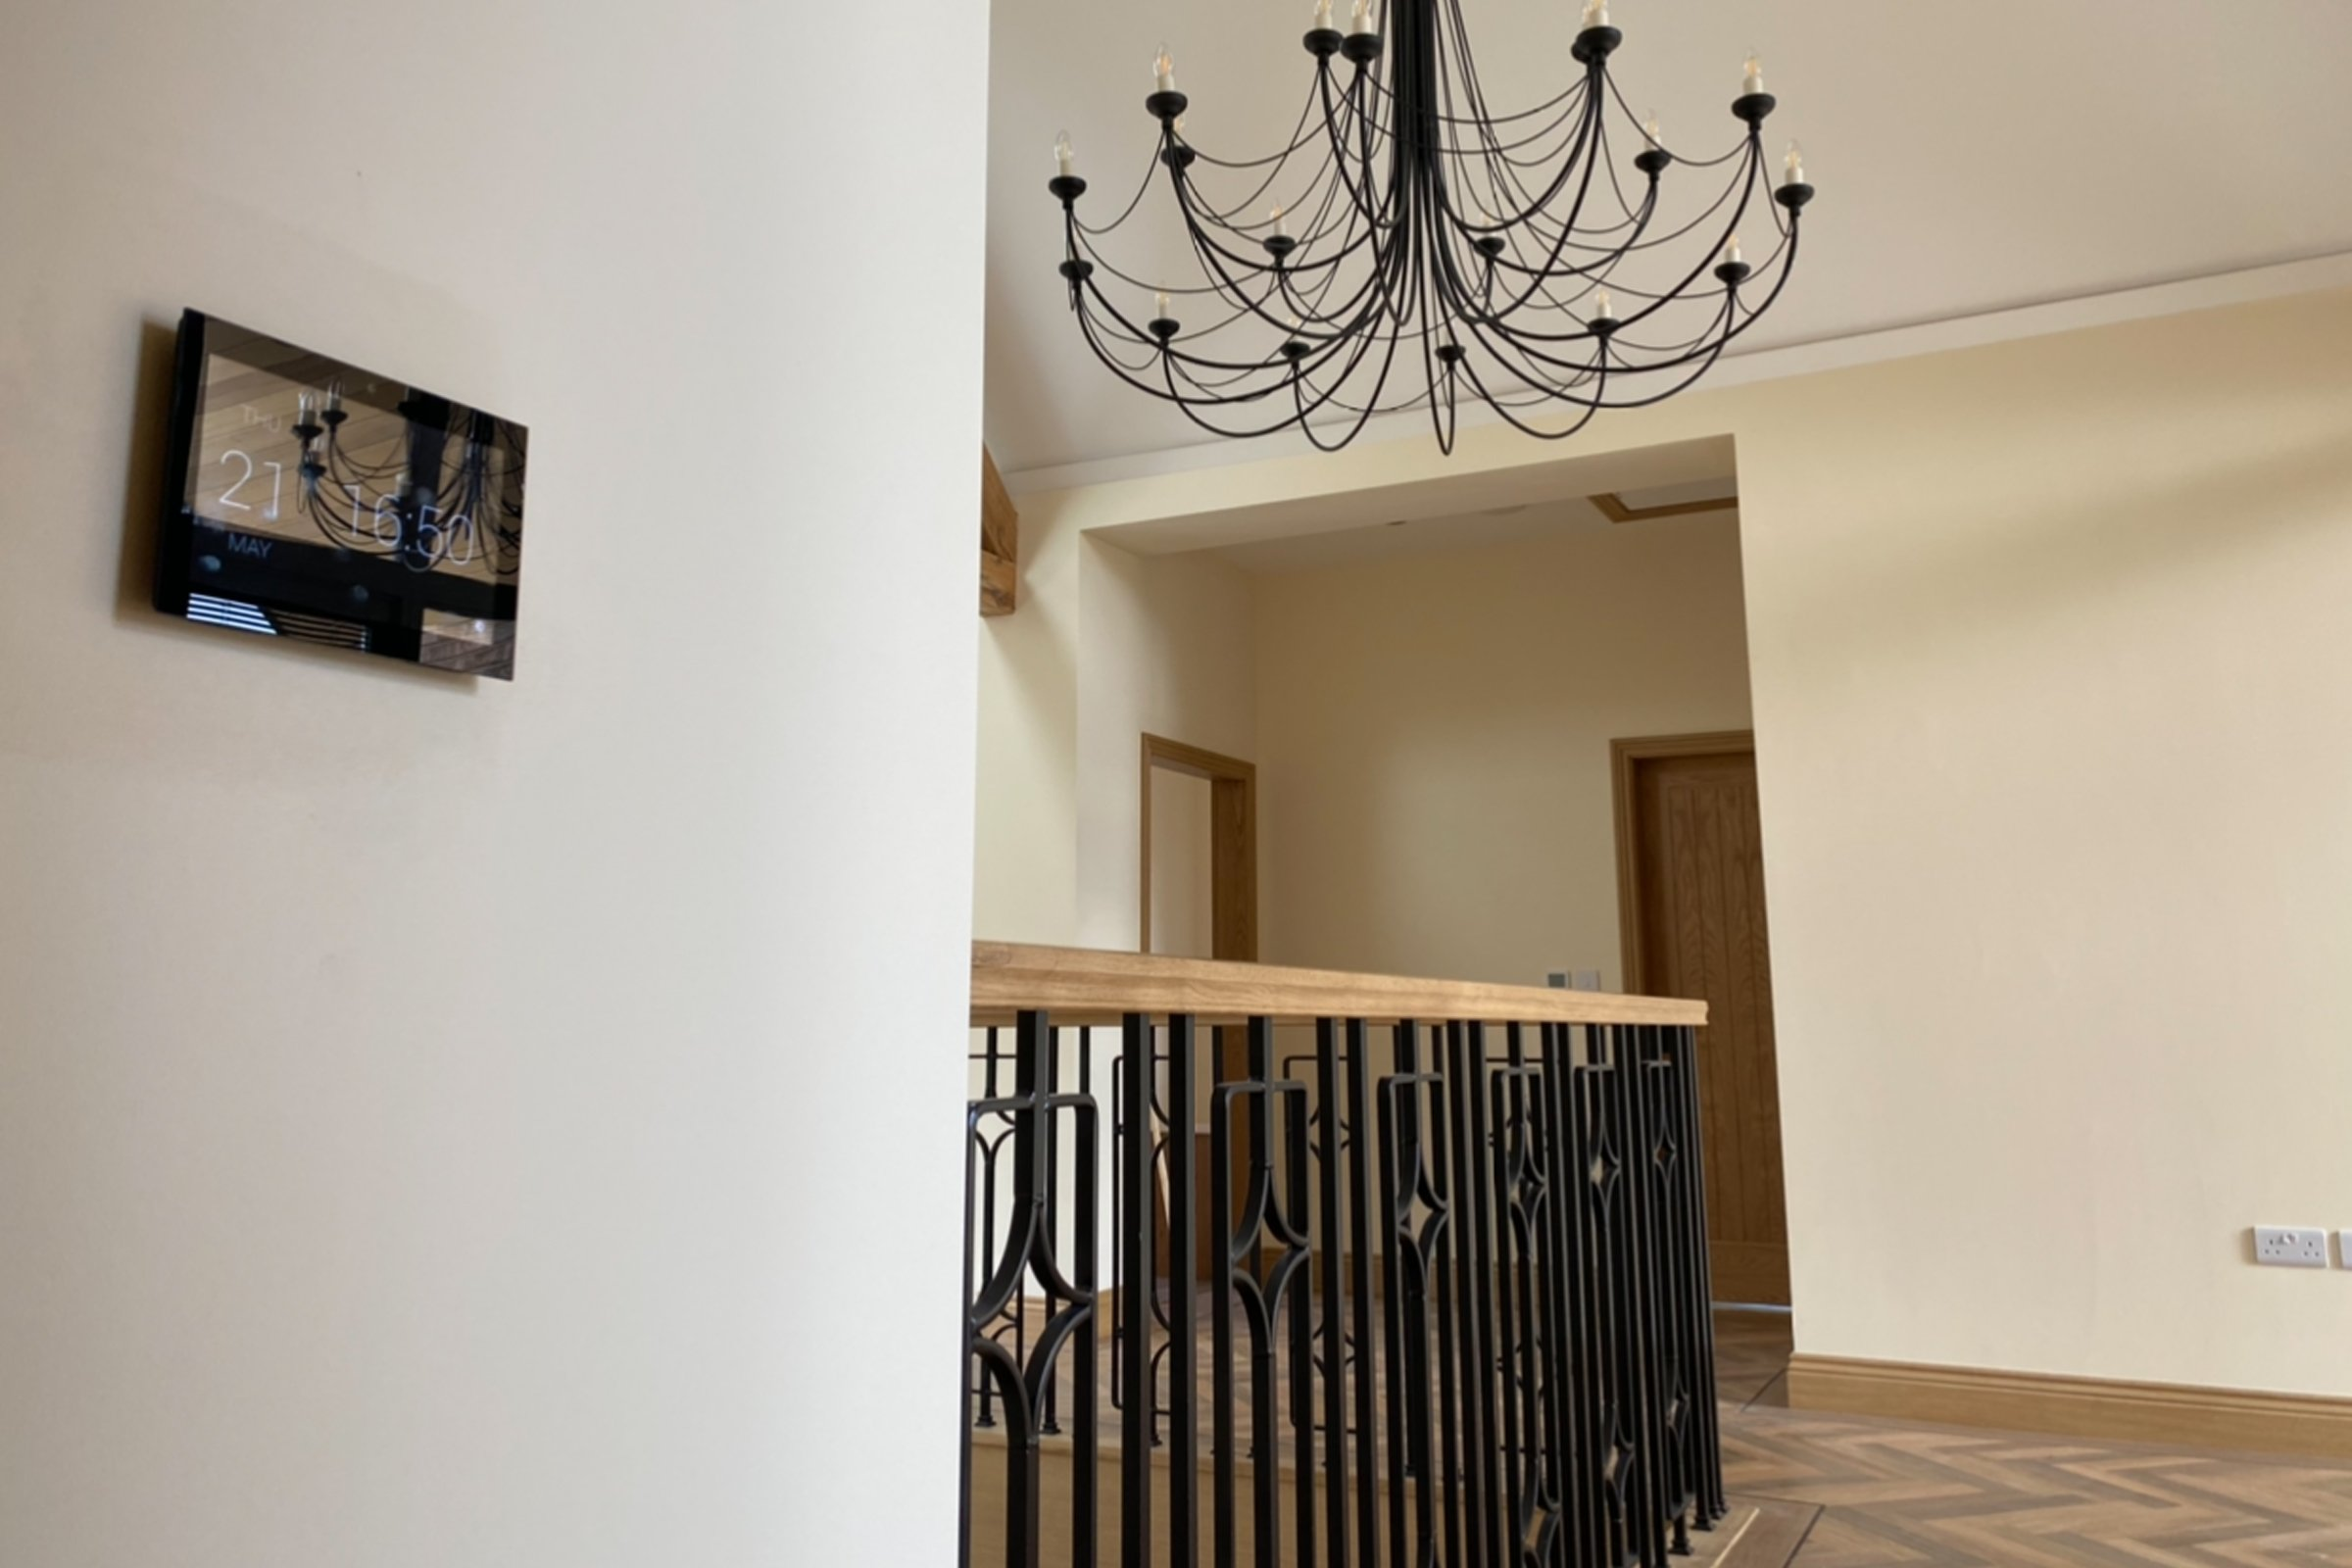 Whole house Control 4 system with Lutron lighting